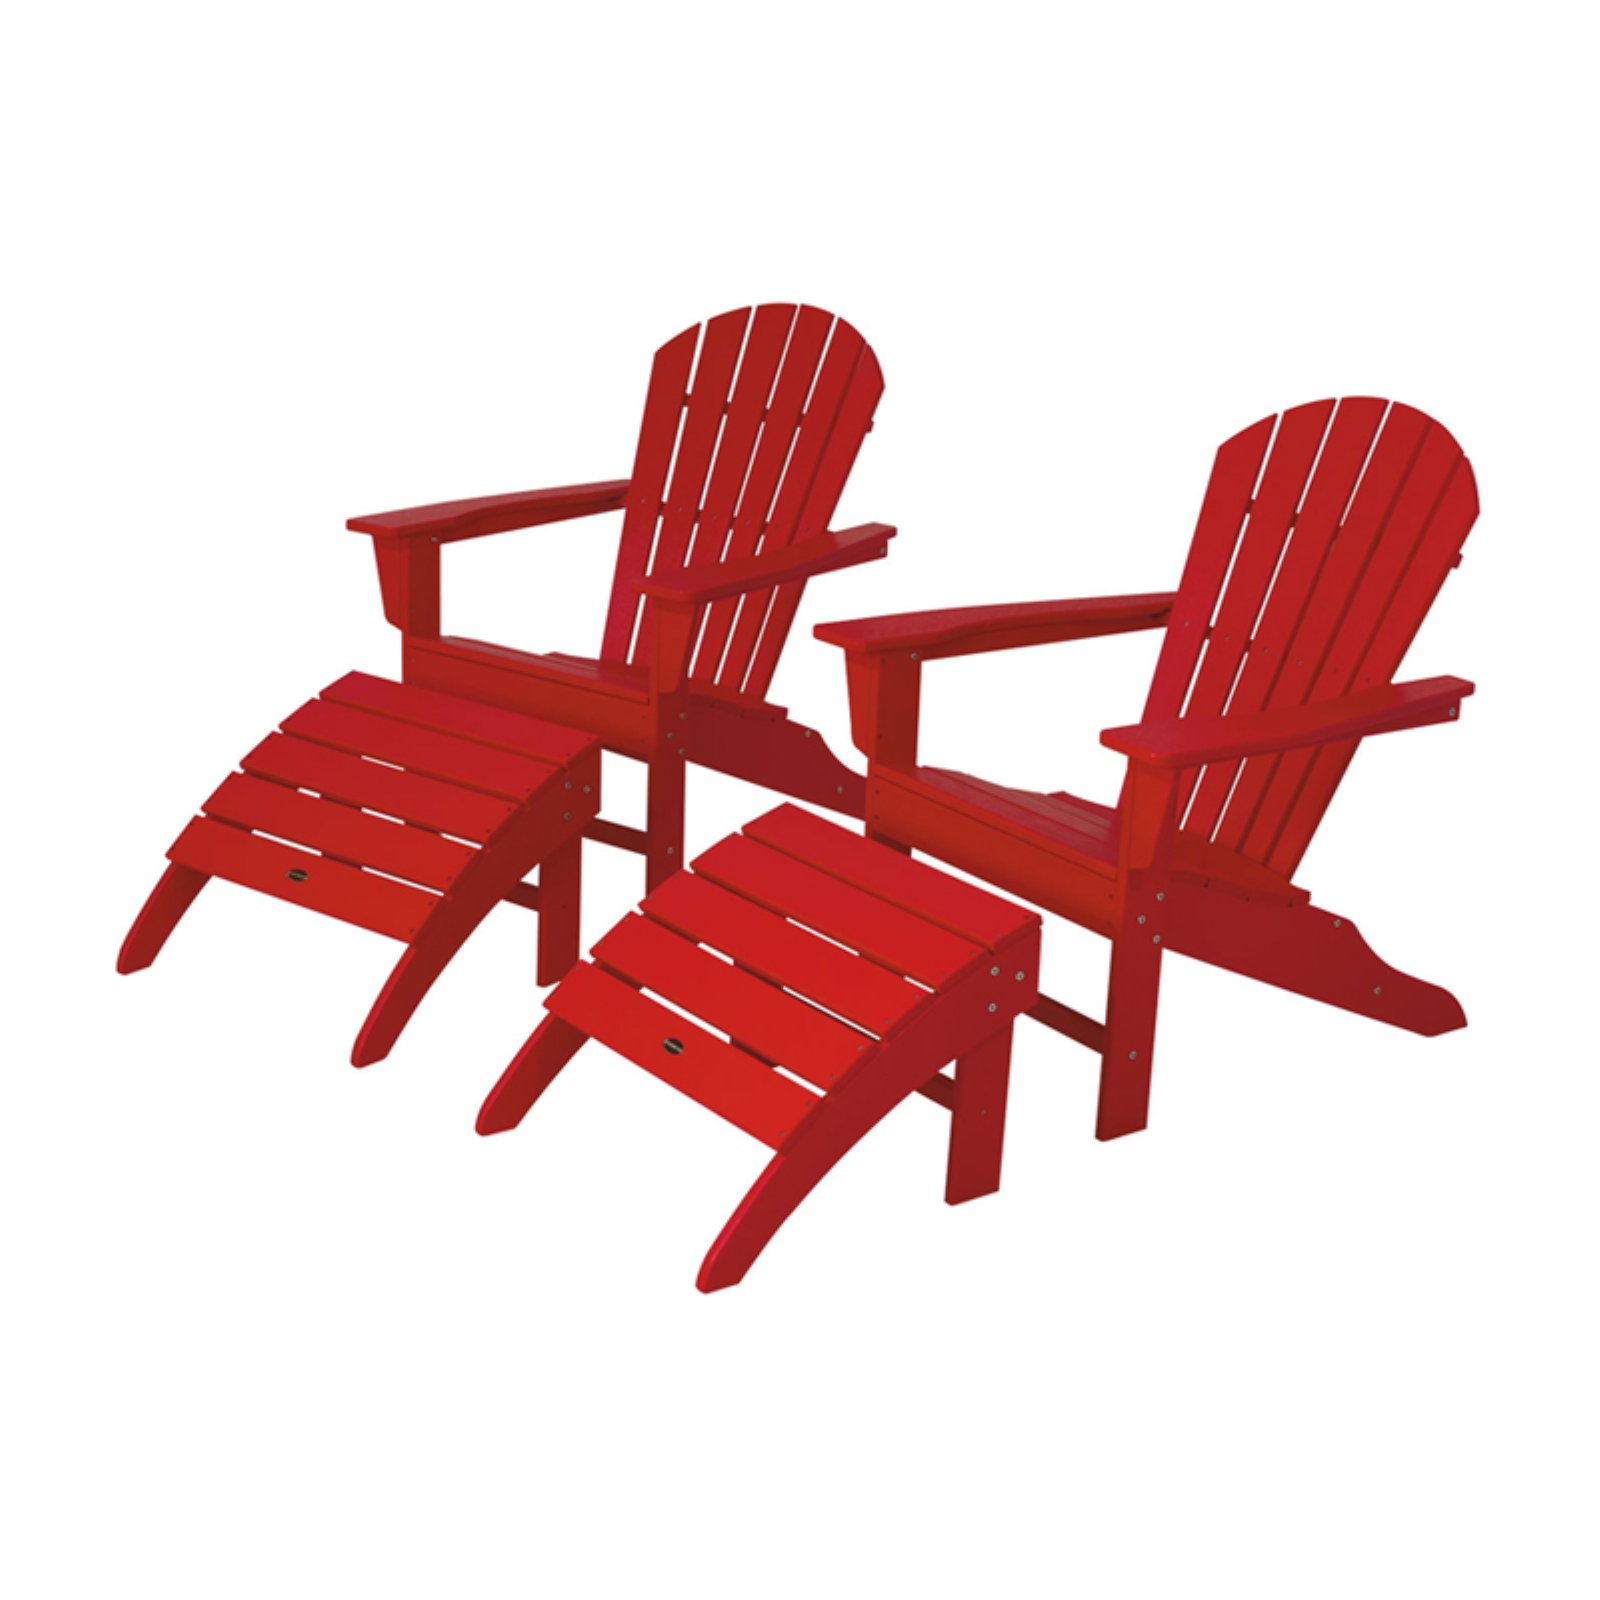 POLYWOOD® South Beach Recycled Plastic 4 pc. Adirondack Chair Set